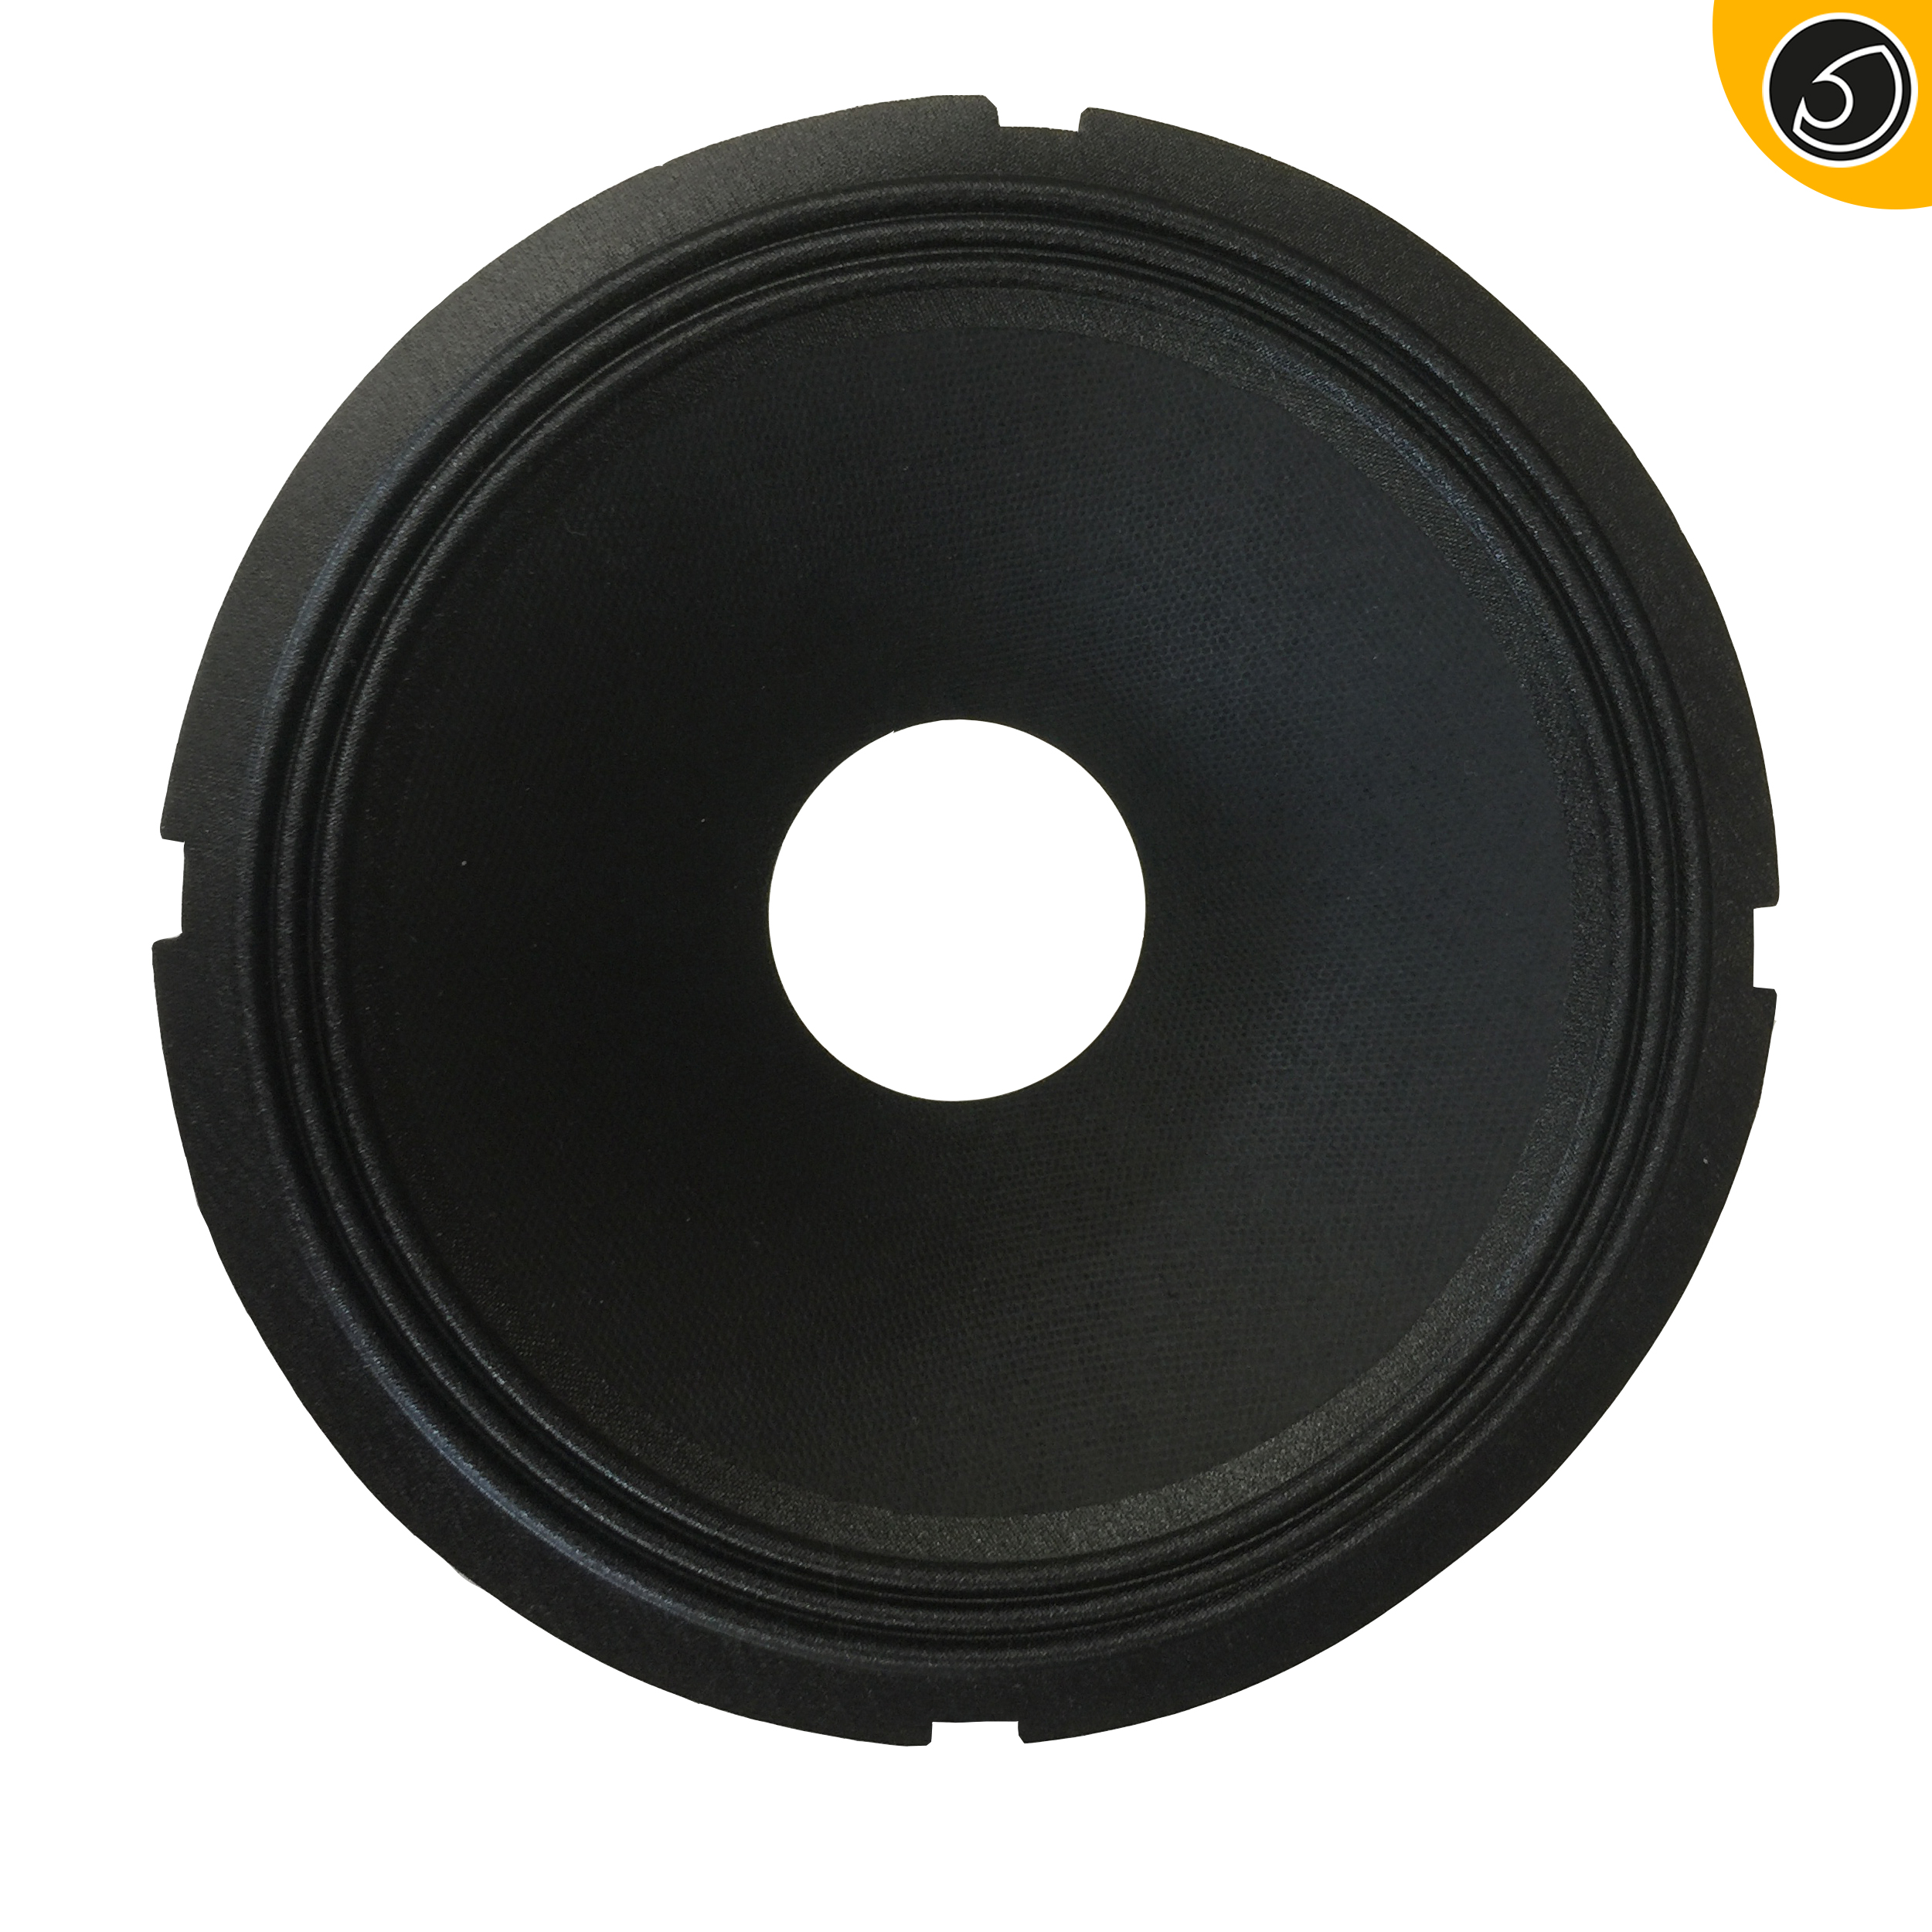 Bassface SPL8M.2.4/8 175mm Non Pressed Paper Replacement Woofer Speaker Cone